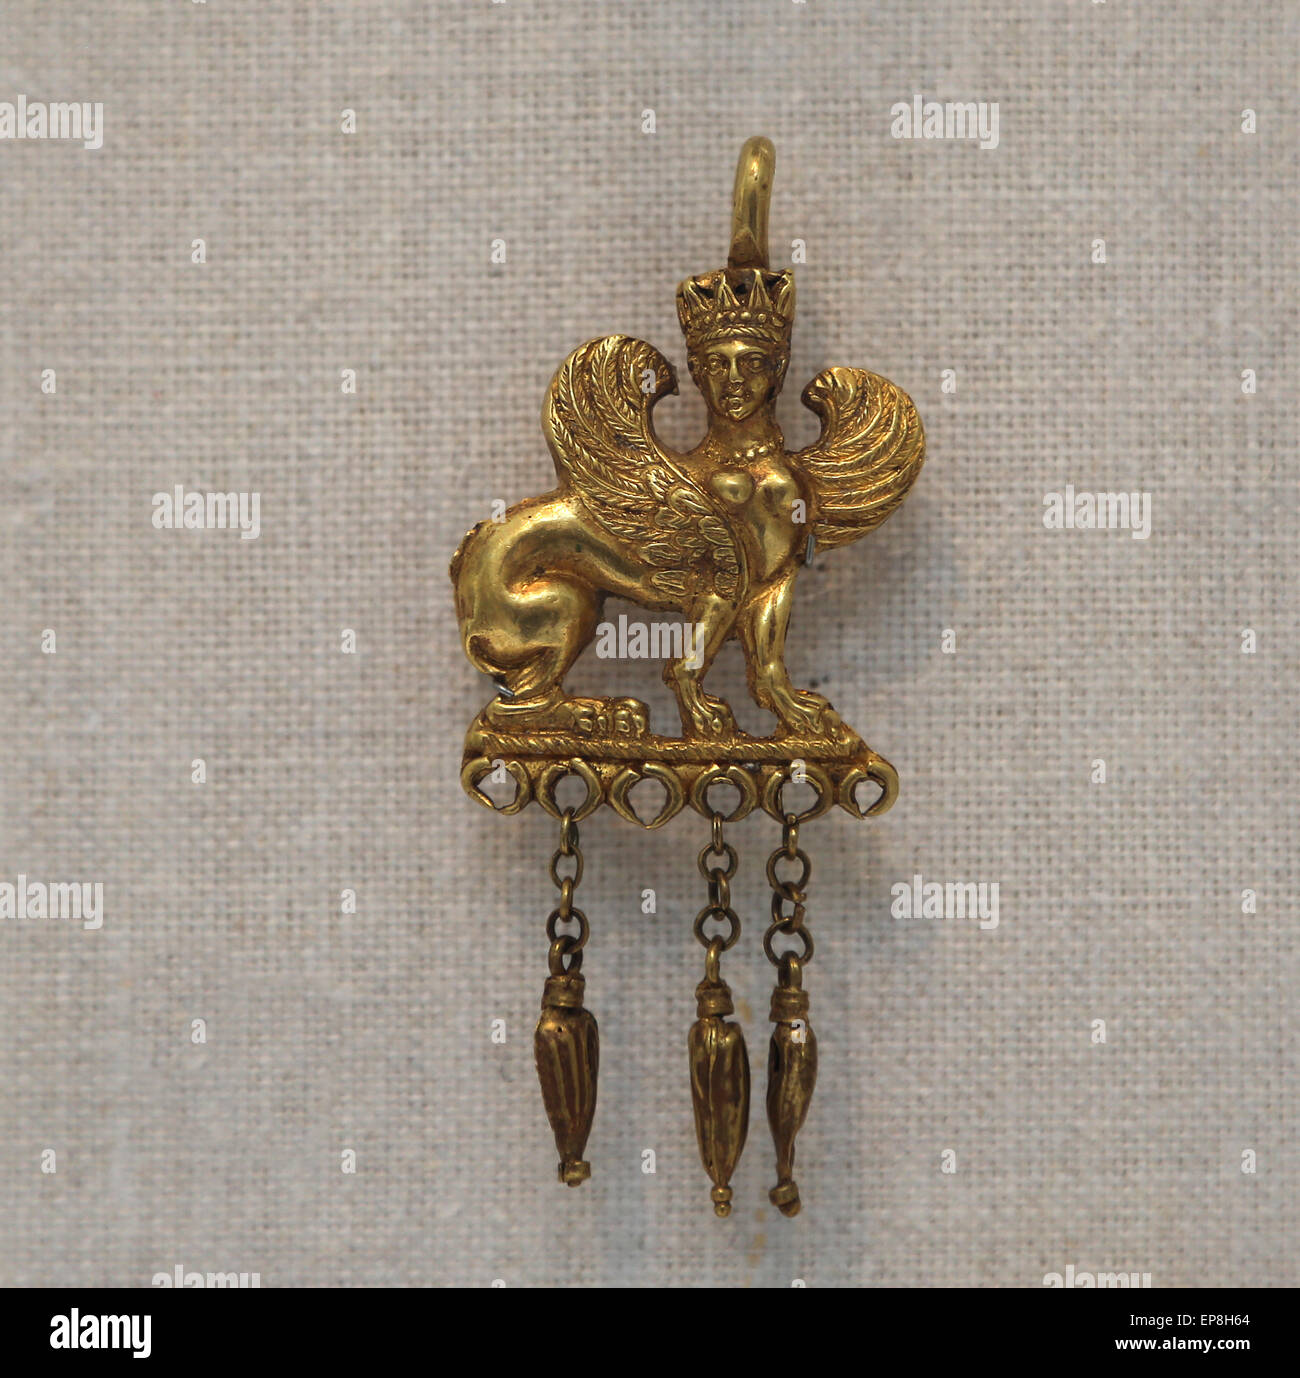 Gold earring with a Sphinx. Greek, 4th-3rd century B.C. Metropolitan Museum of Art. New York. USA. - Stock Image